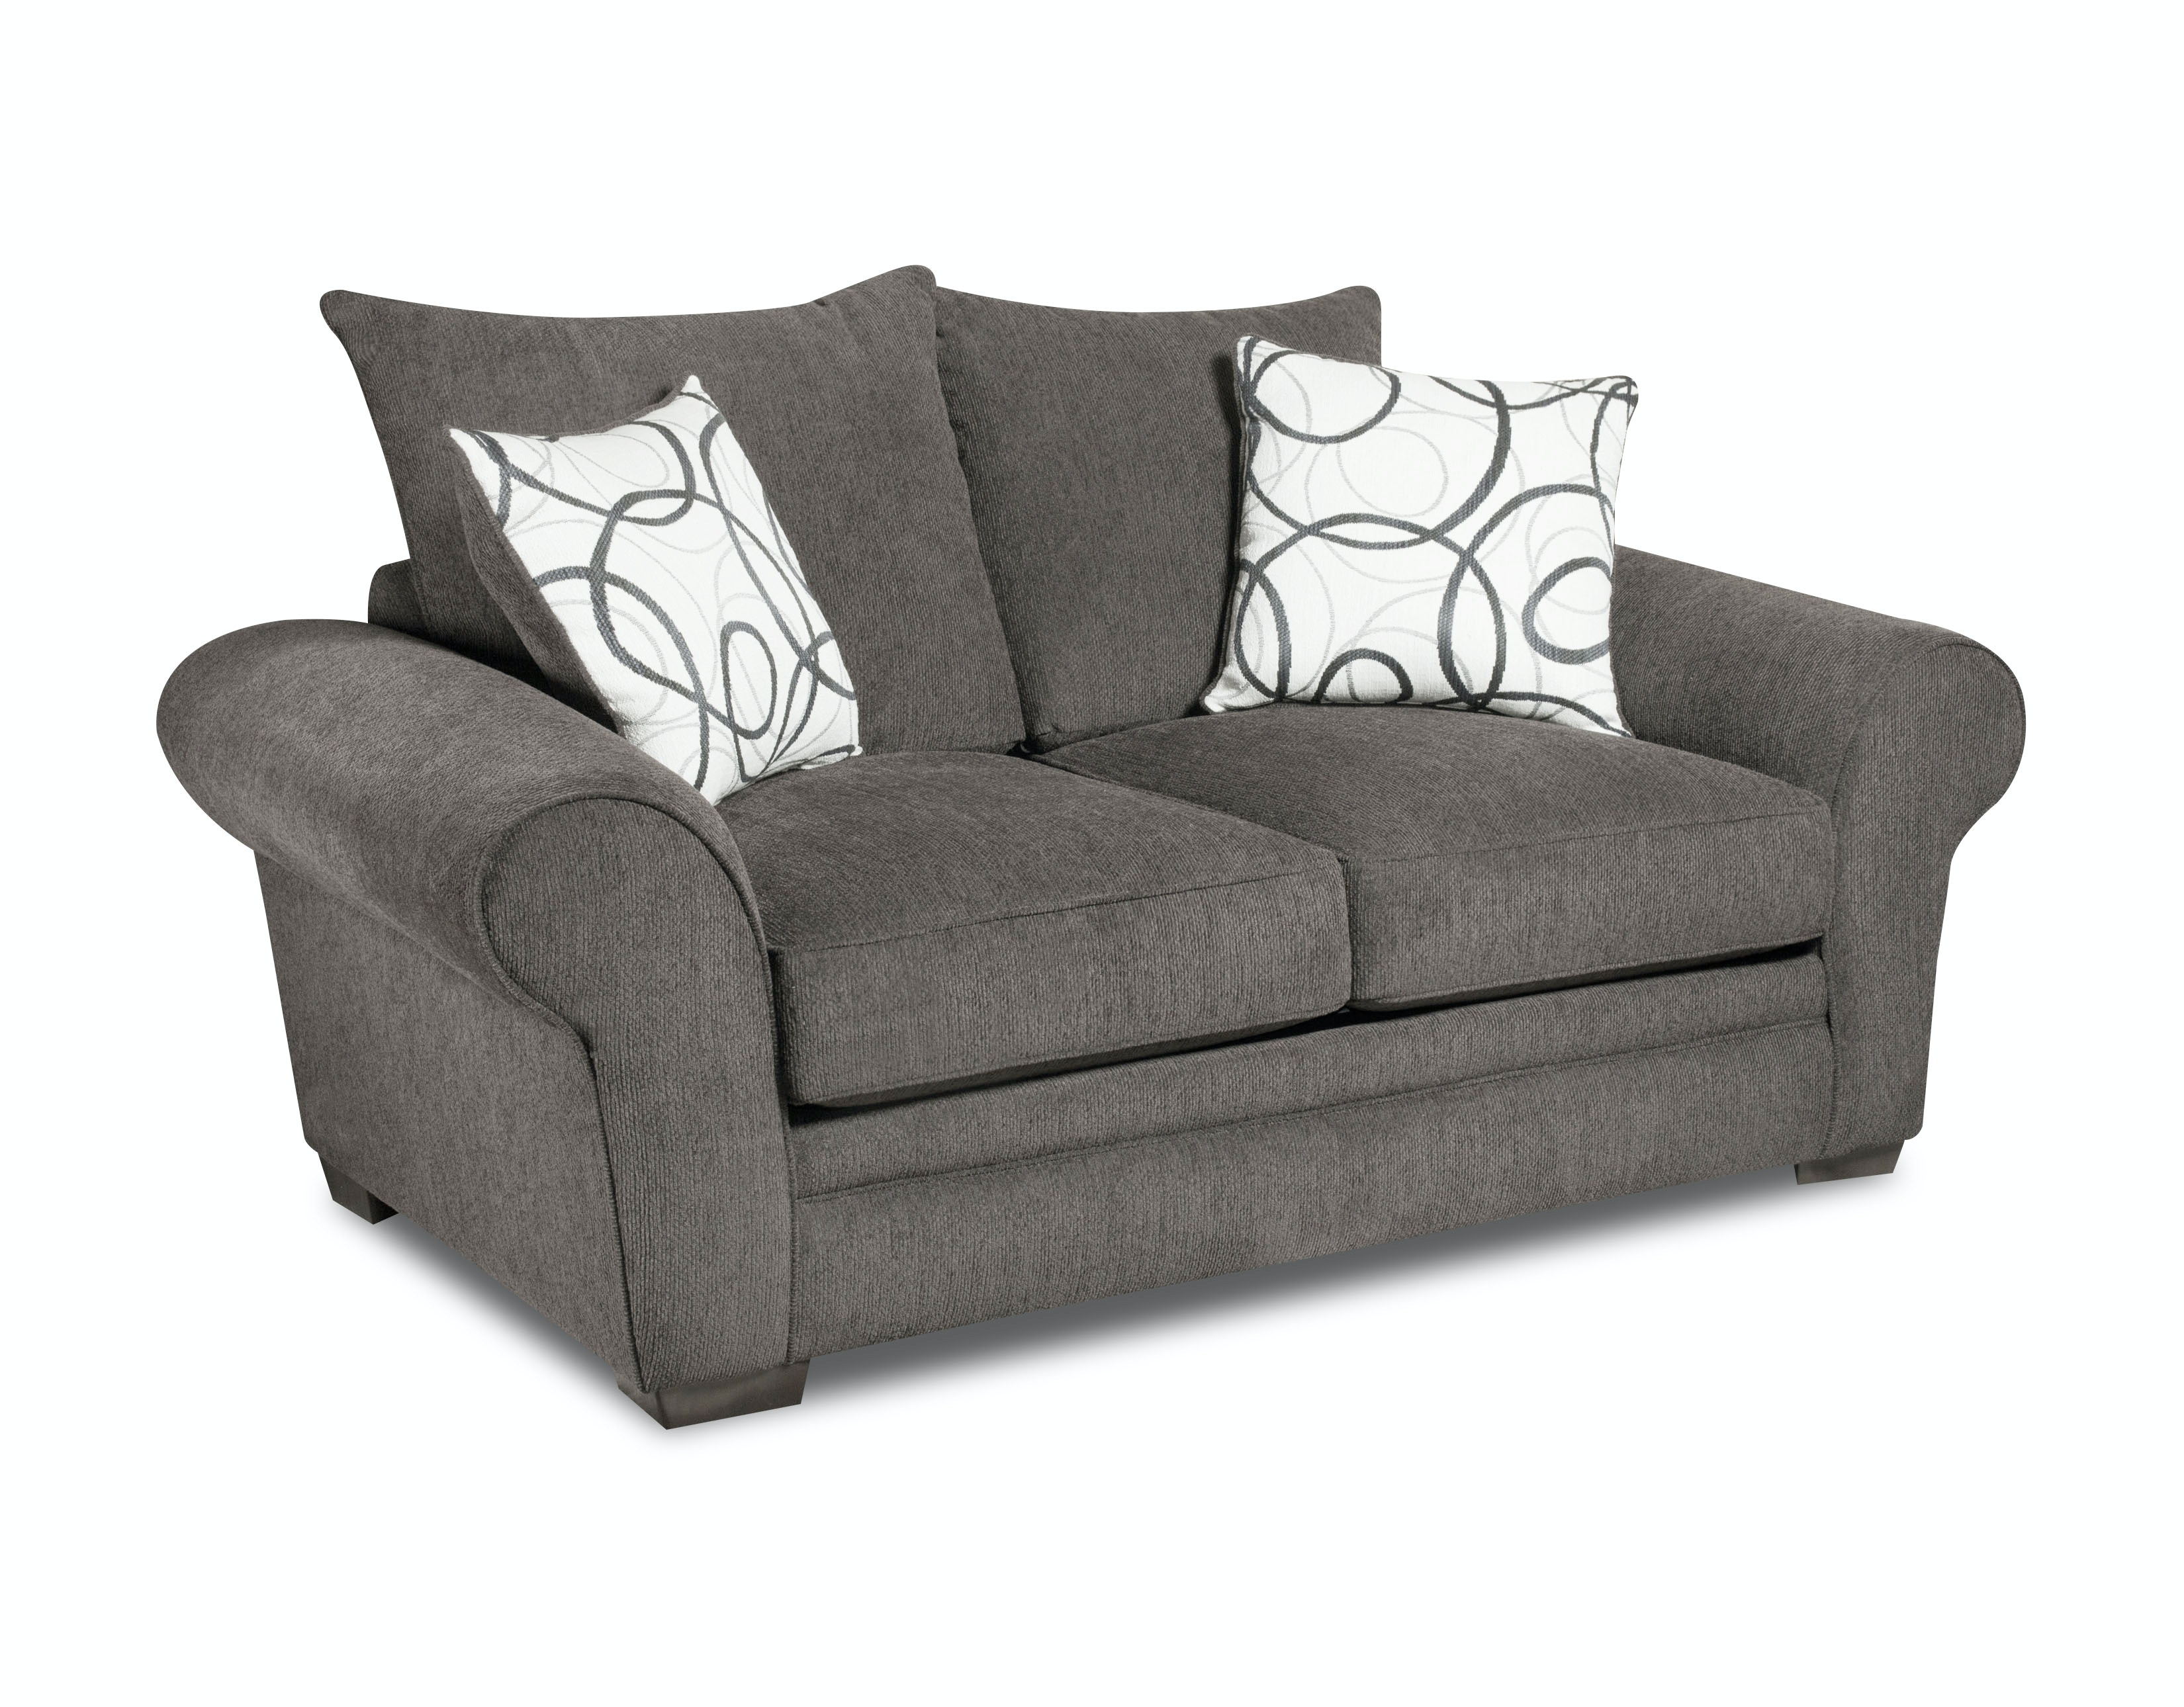 Corinthian Othello Black Loveseat On Sale At Elgin Furniture In Euclid,  Cleveland Heights, U0026 North Randall